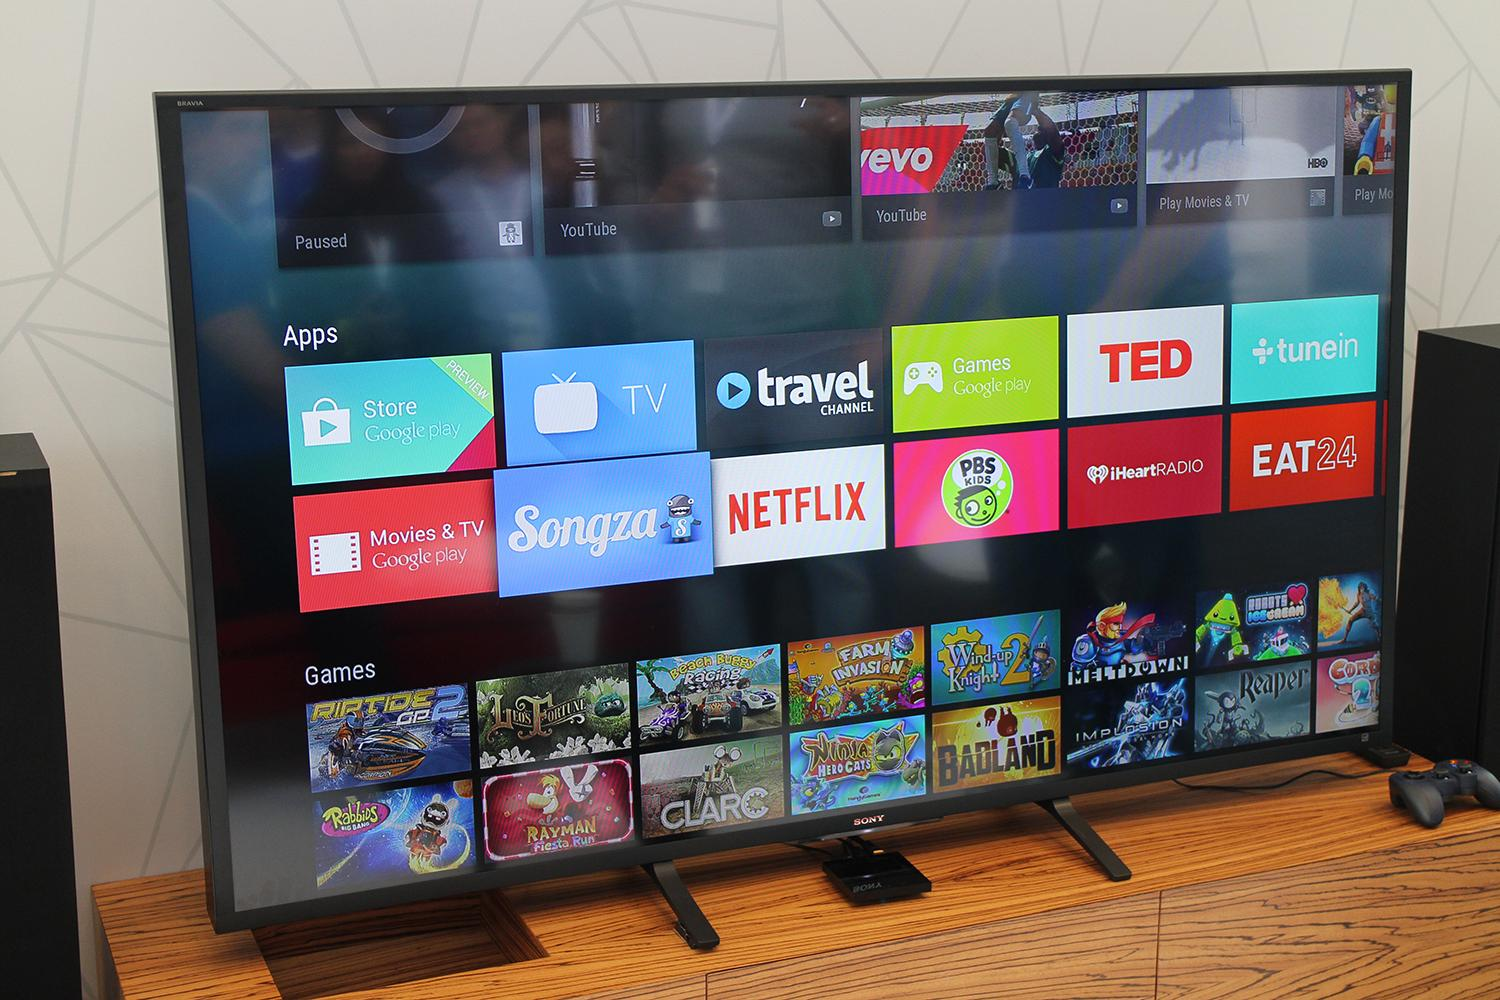 IPhone and iPad users are now able to manage Android-TV